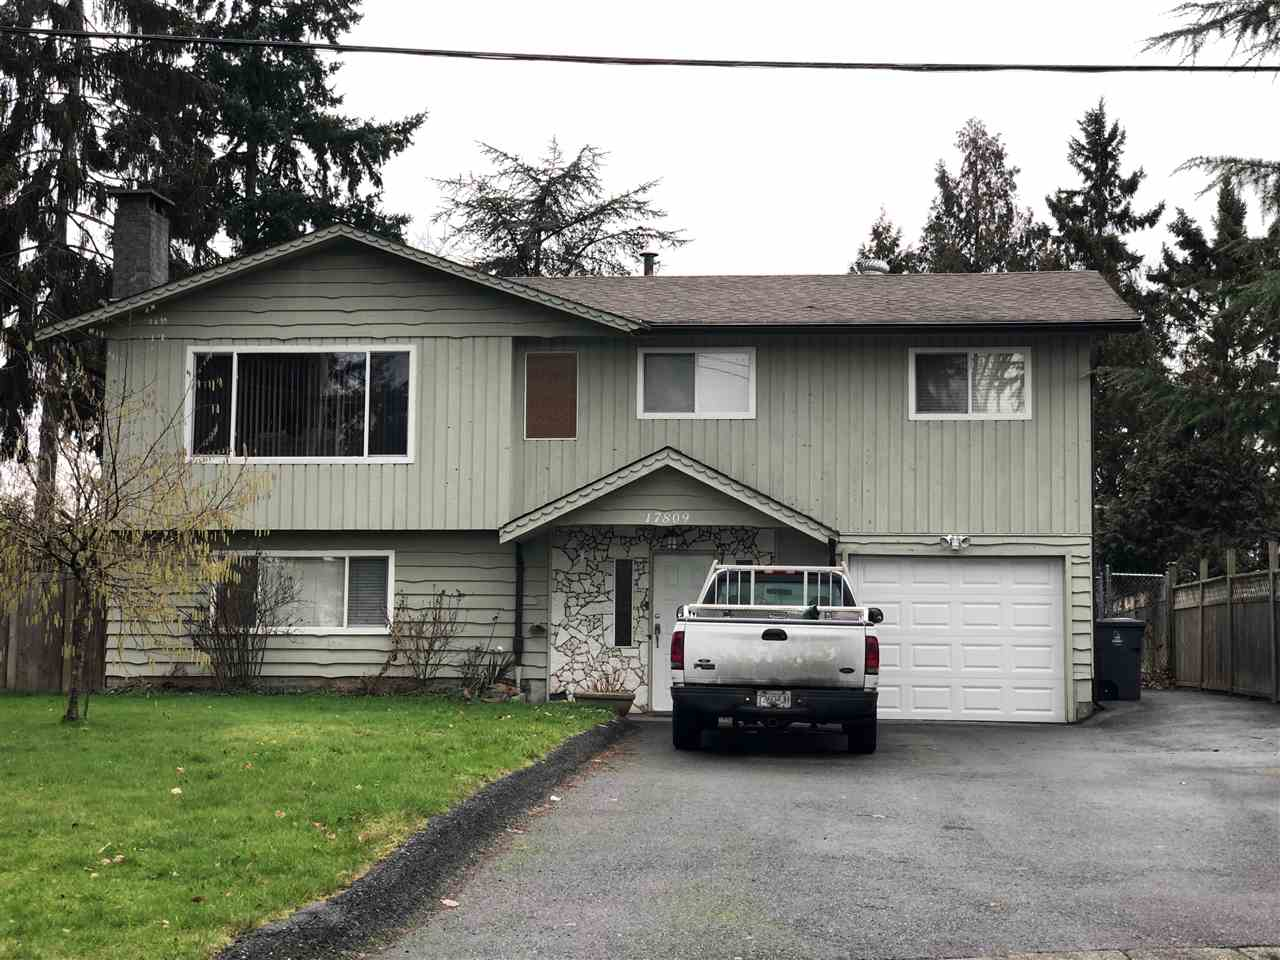 Main Photo: 17809 57A Avenue in Surrey: Cloverdale BC House for sale (Cloverdale)  : MLS®# R2235943